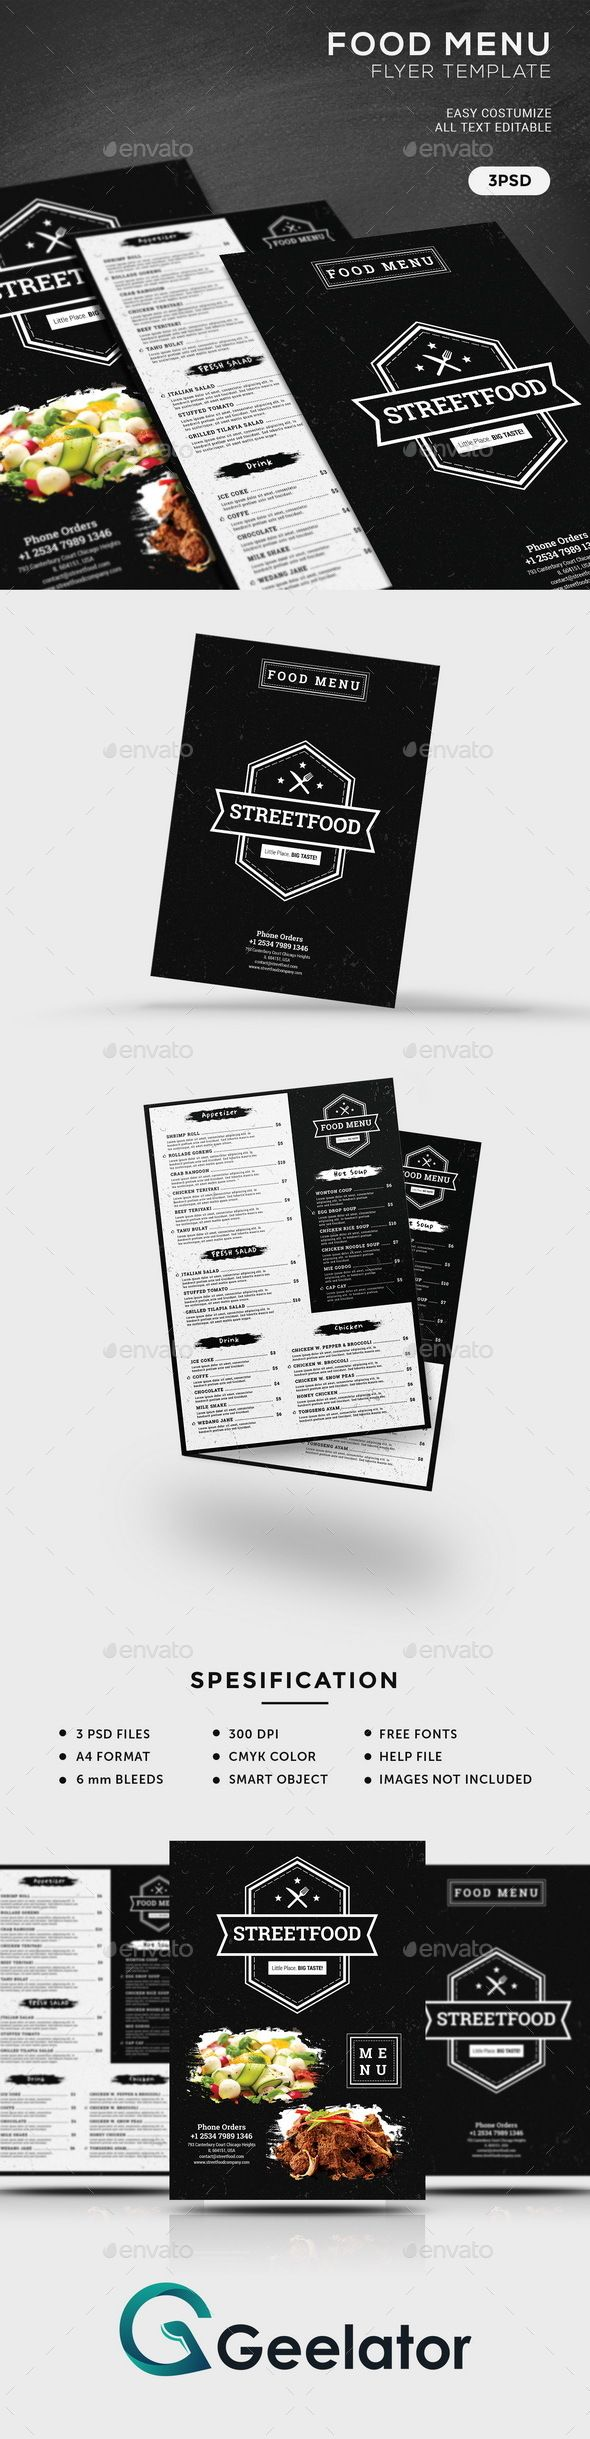 Food Menu Flyer Template  Grunge and Vintage flyer template designed to promote your business and perfect for your restaurant promotion, a promotion that wrapped in a nice restaurant menu, coffee shop, cafe, and many more. You can easily edit this flyer template. You can change image with the smart object. You can resize all object without reducing the image quality. #advertisment #cafeflyer #cafemenu #coffeflyer #deliciousmenu #fastfood #fastfoodflyer #fastfoodrestaurant #foodflyer…